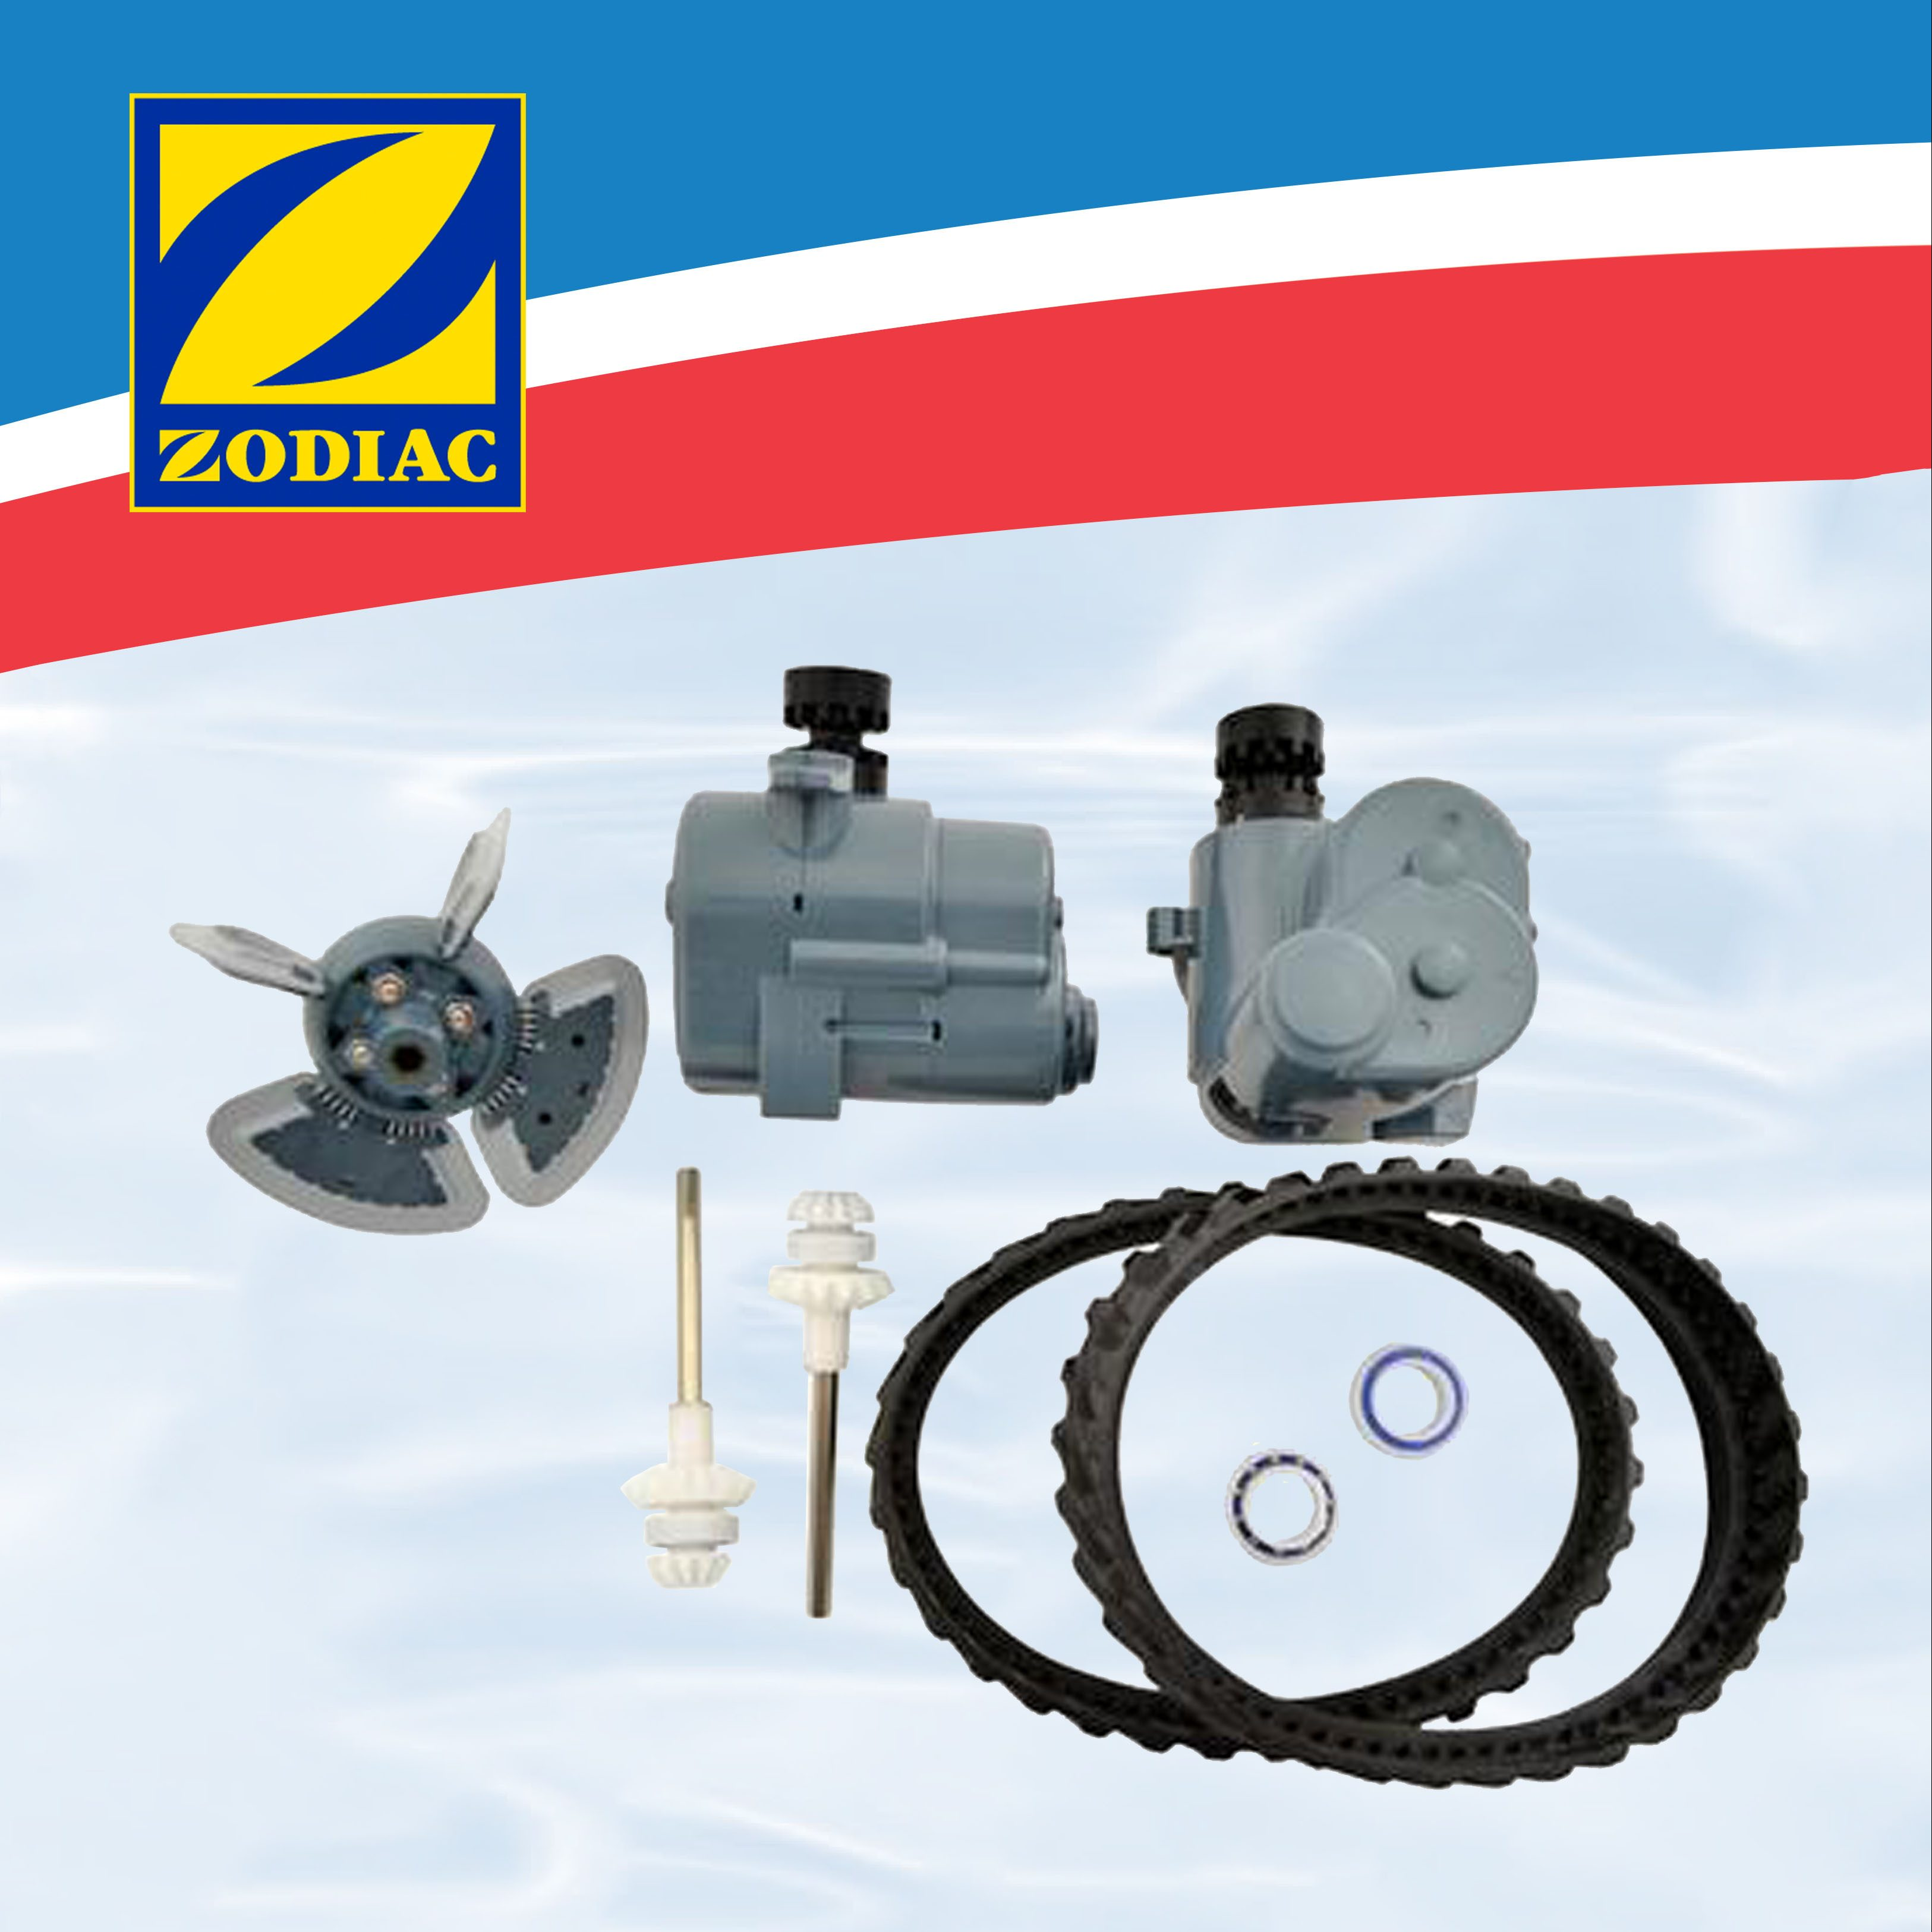 Baracuda Mx Engine Assembly R likewise Zodiac Mx Reverse Assembly Gear Side B Angle additionally Baracuda Mx Scrubber Assembly R likewise Mx likewise Baracudamx Diagram. on zodiac mx8 cleaner parts